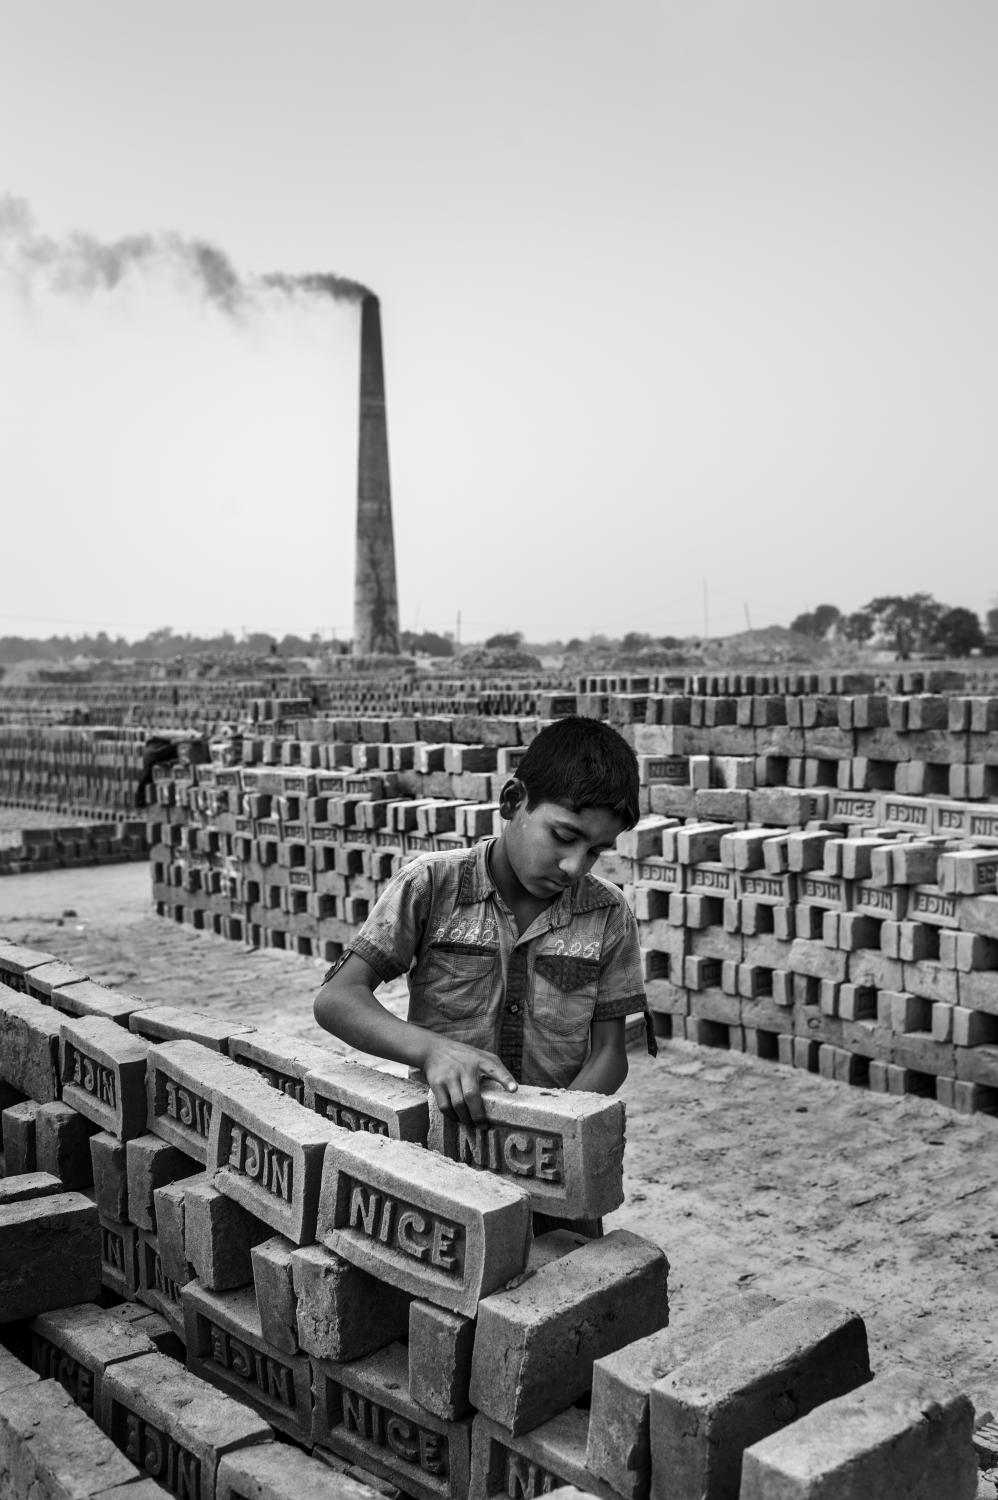 Bangladesh, Rajshahi, Hari Shankarpur. January 2013 Hasan is ten years old and works at �Nice� brick factory. His work is to stack bricks: for every 1000 bricks he stacks, he gets 20 Taka. In a good day of work he can earn up to 100 Taka (aprox 1US$). Hasan is forced to work to help support his family. Hasan is still going to school, he is in class six. Although the law prohibits child labour, the practice is consistent throughout the region. Enforcement of existing laws is inadequate. Child labour is technically illegal but extremely widespread. Driven by poverty, it is often parents who are forced to push their children into work at an early age. (please note all the real names of the children is this story have been changed to protect their identity)